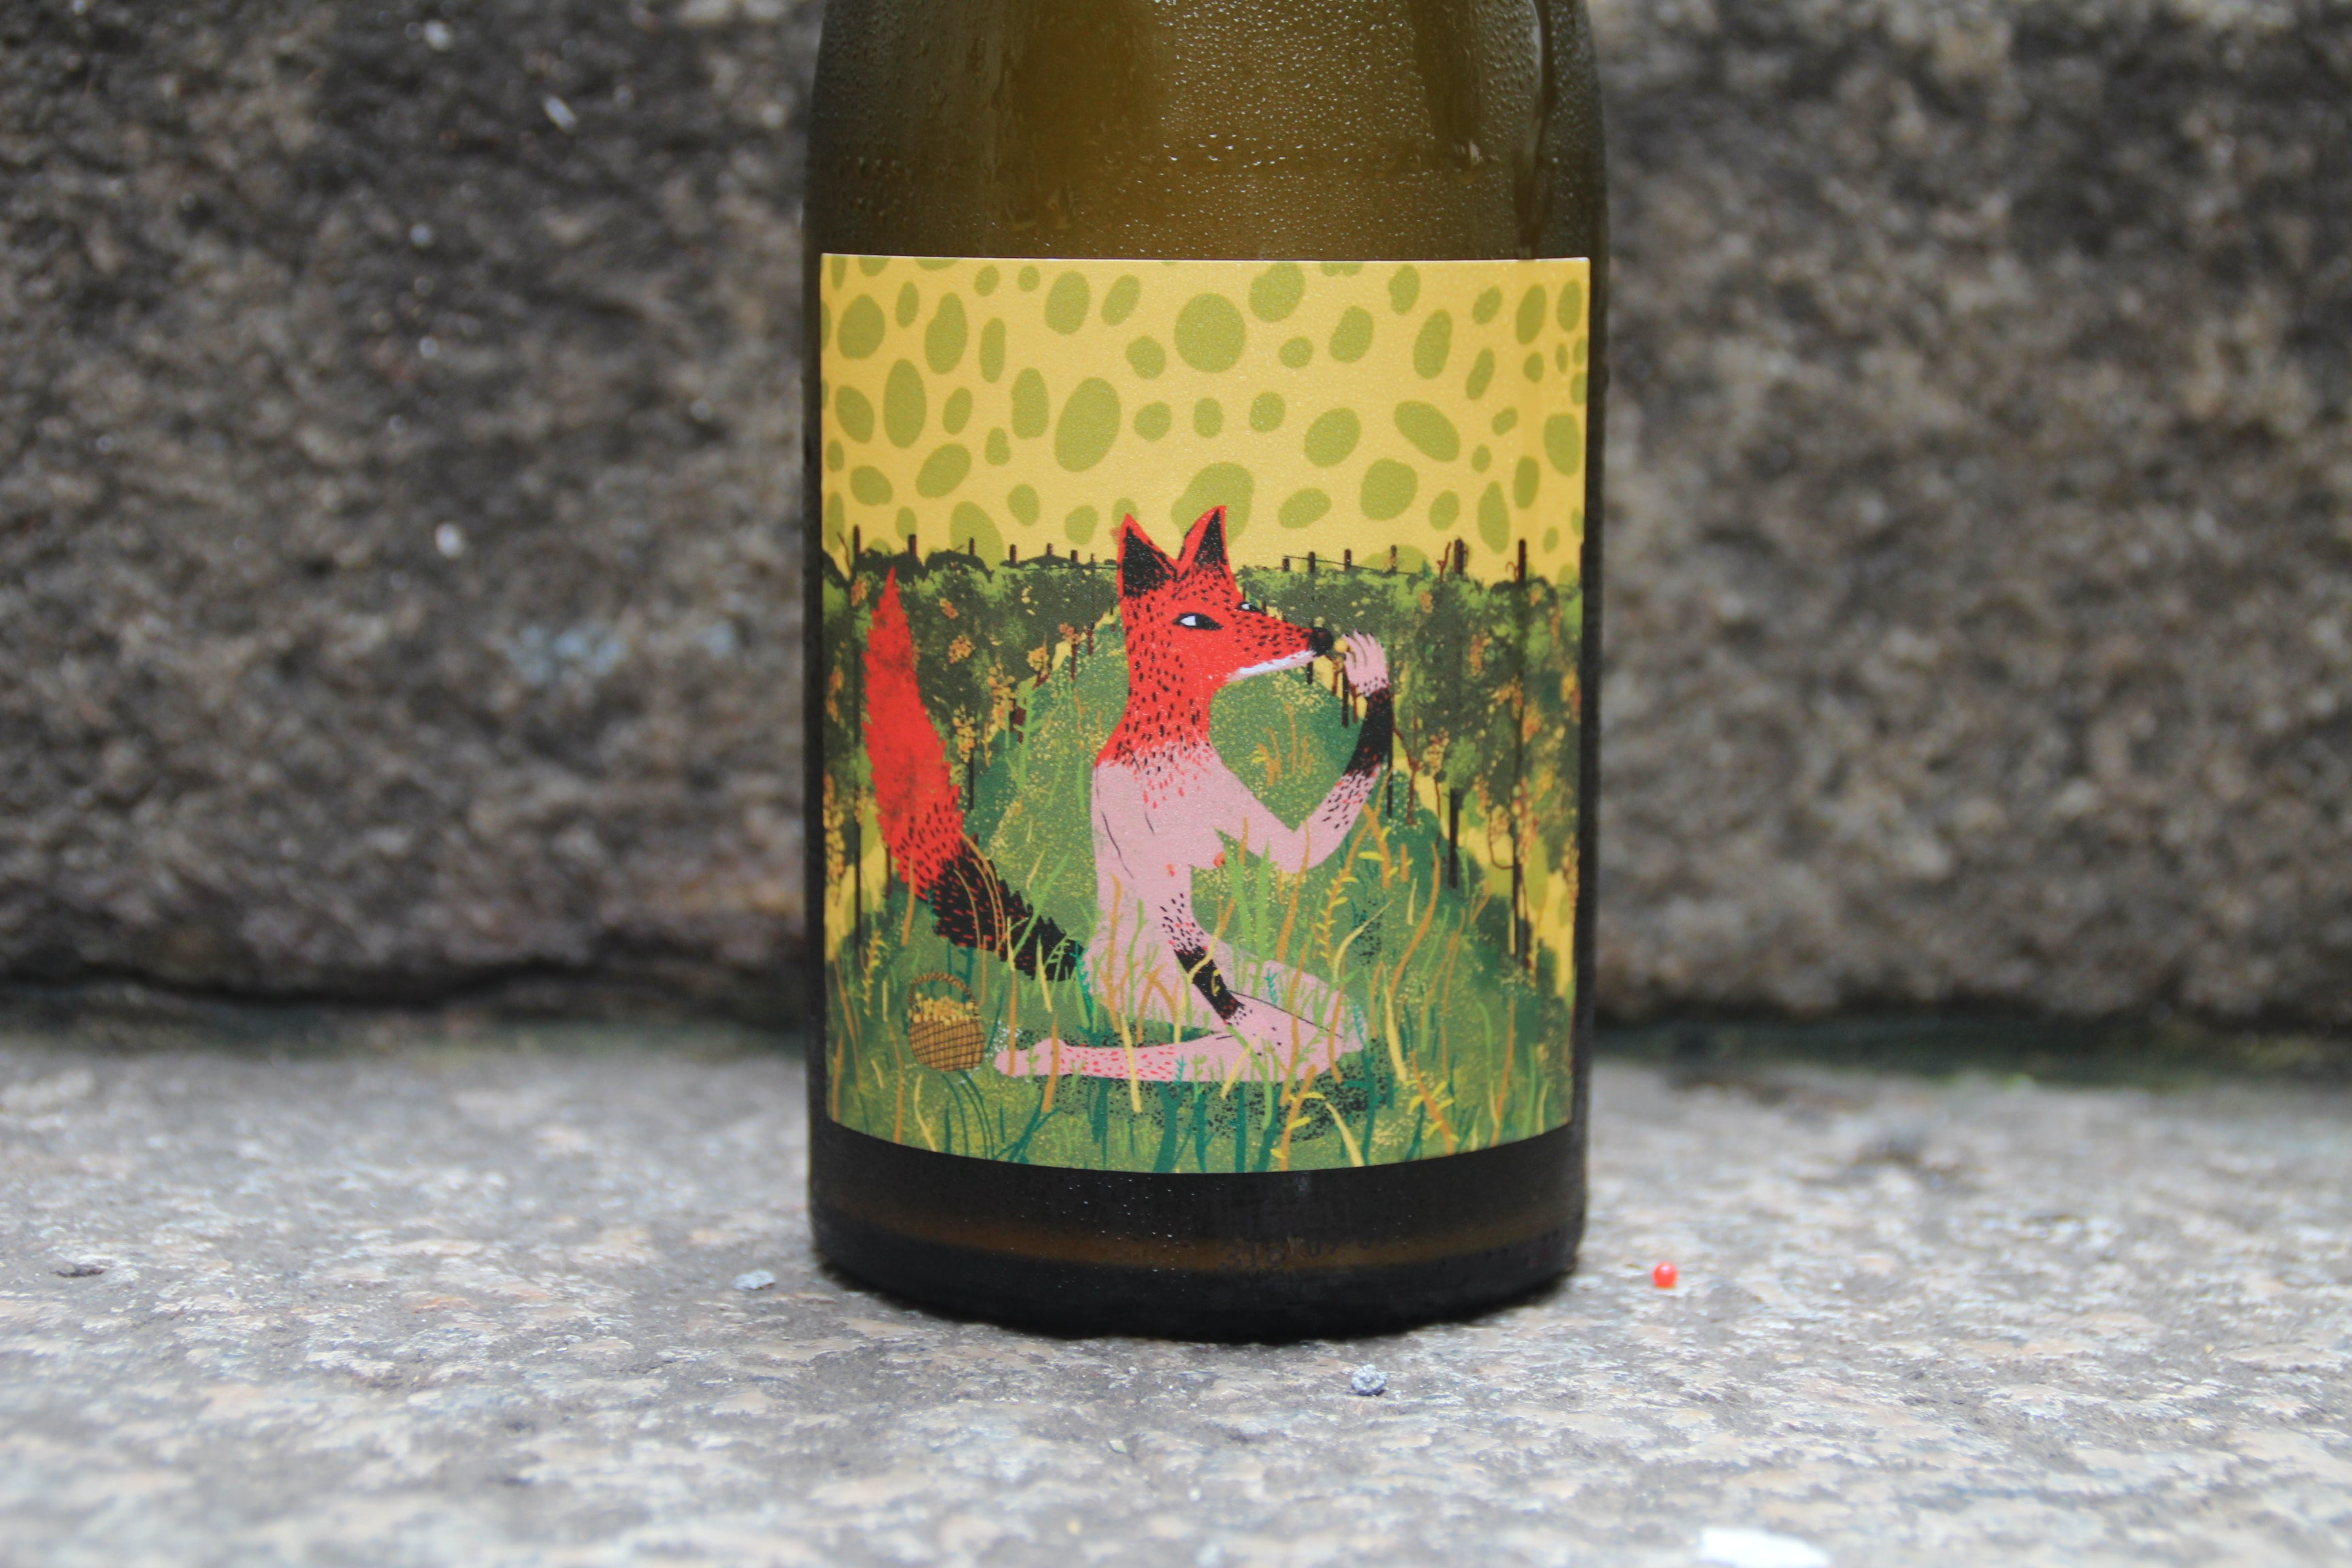 Kindeli Otono 2018 - Alex Craighead Wines